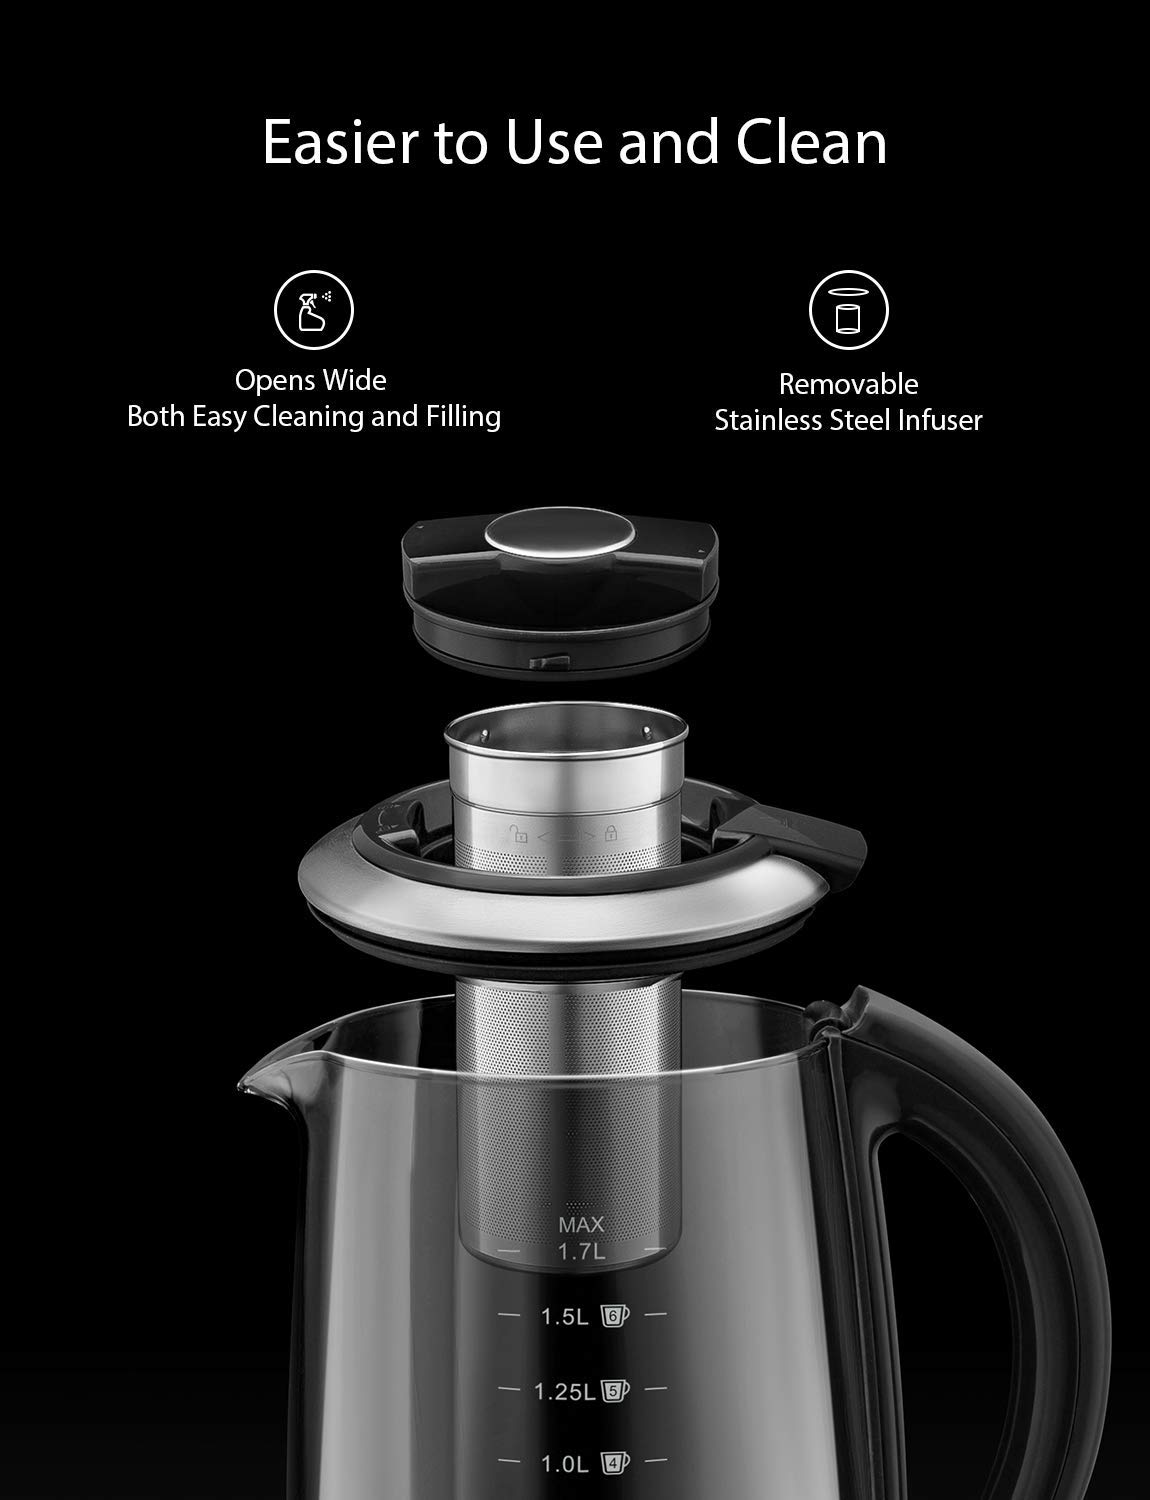 Willsence Electric Kettle, Electric Tea Kettle Stainless Steel Glass Boiler Hot Water Tea Heater with Temperature Control LCD Display, Removable Tea Infuser, 1.7 L, 1200W by Willsence (Image #7)